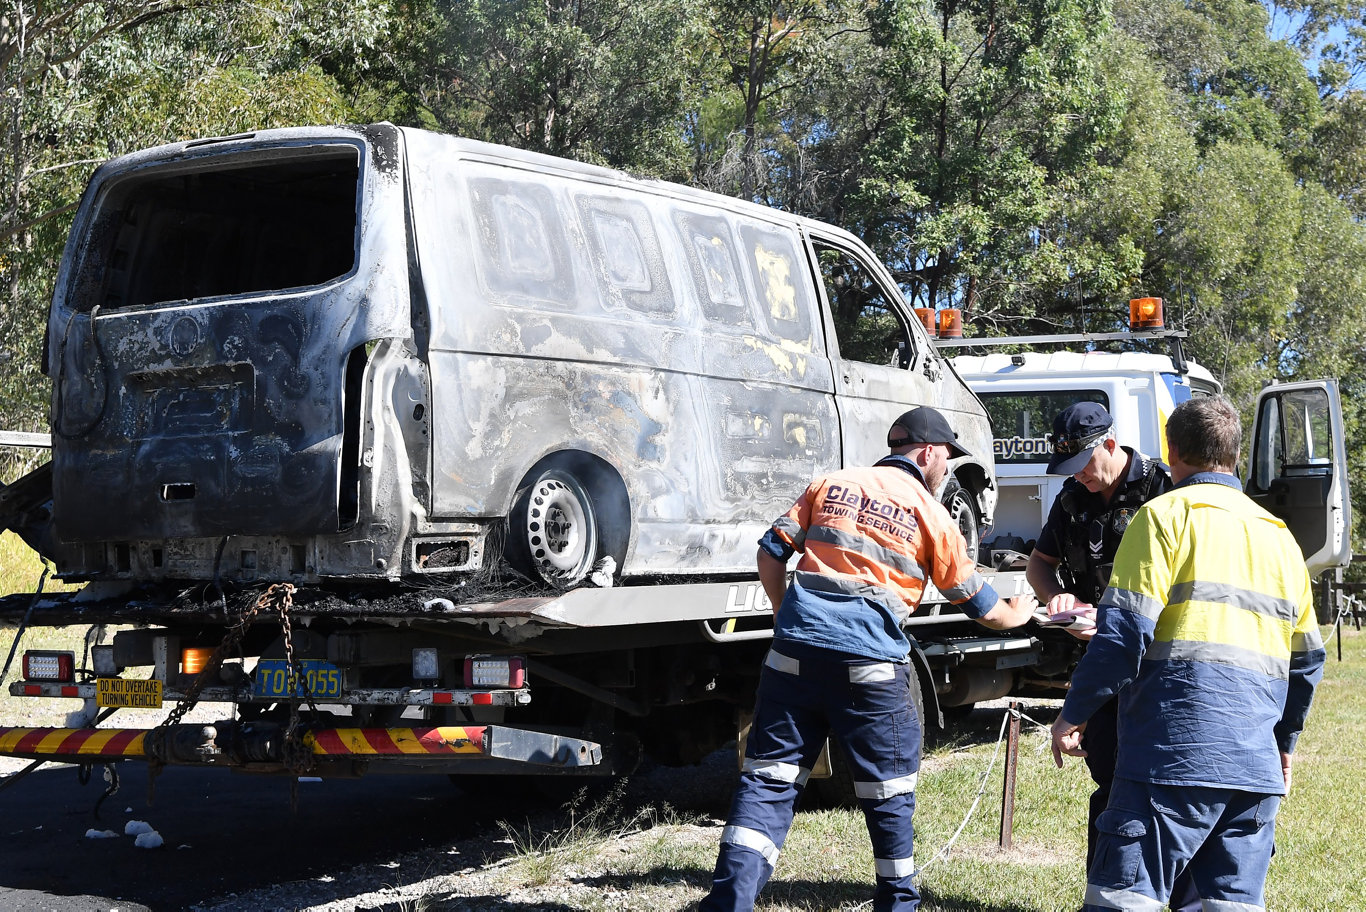 A van was destroyed after a fire ignited under the bonnet when it overheated at Tanawha on Wednesday. Photo Patrick Woods / Sunshine Coast Daily.